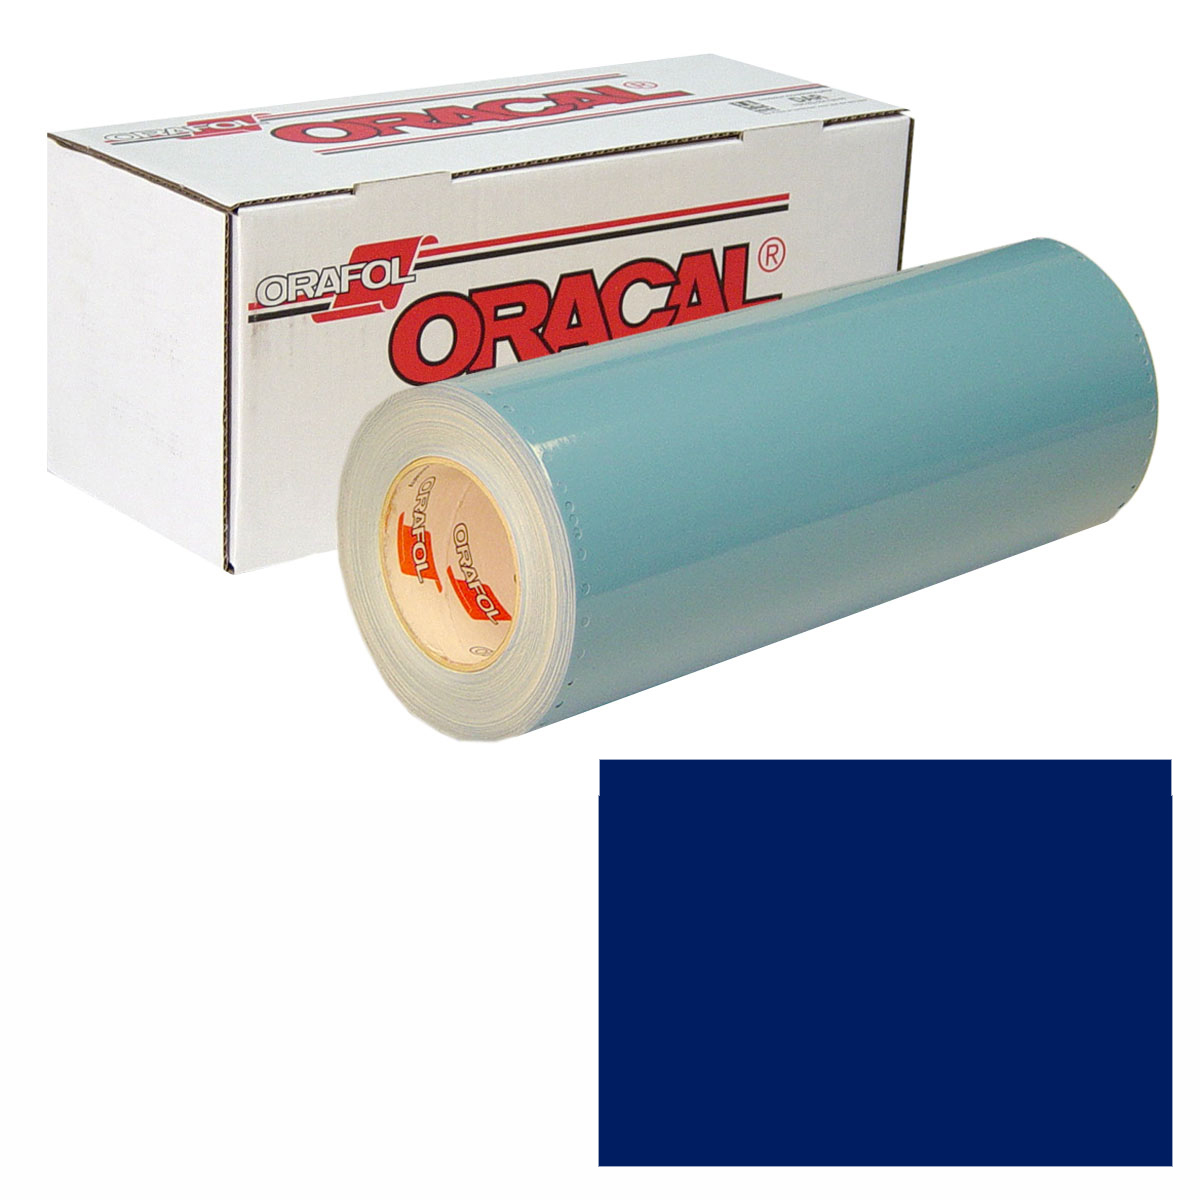 ORACAL 751 15in X 50yd 537 Deep Blue